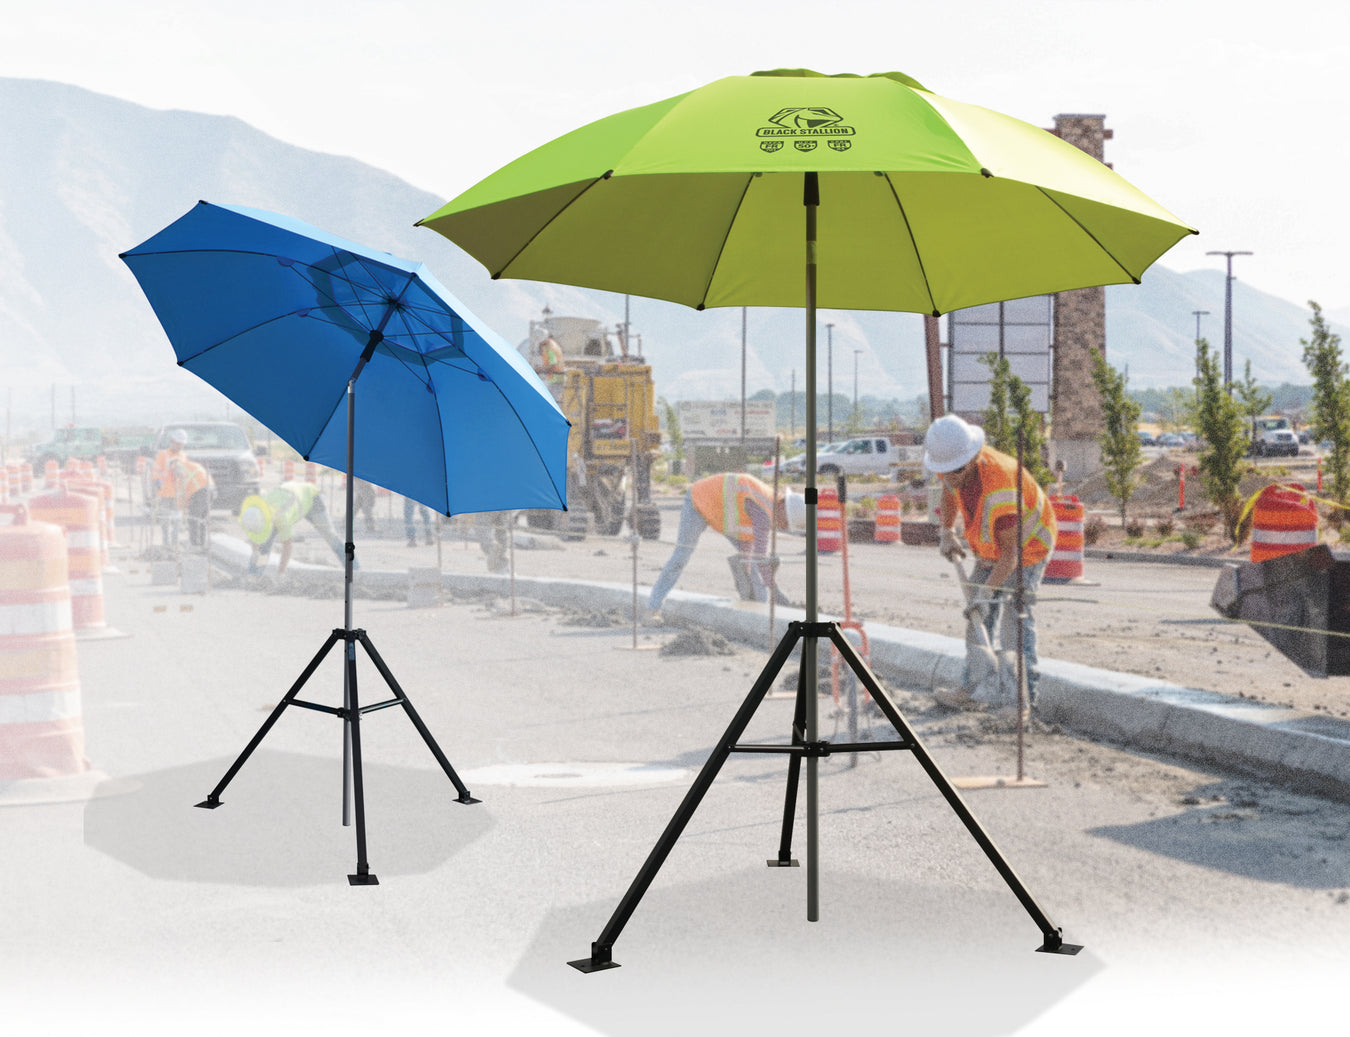 FR Welding Umbrellas offer sunlight protection and weld spatter protection